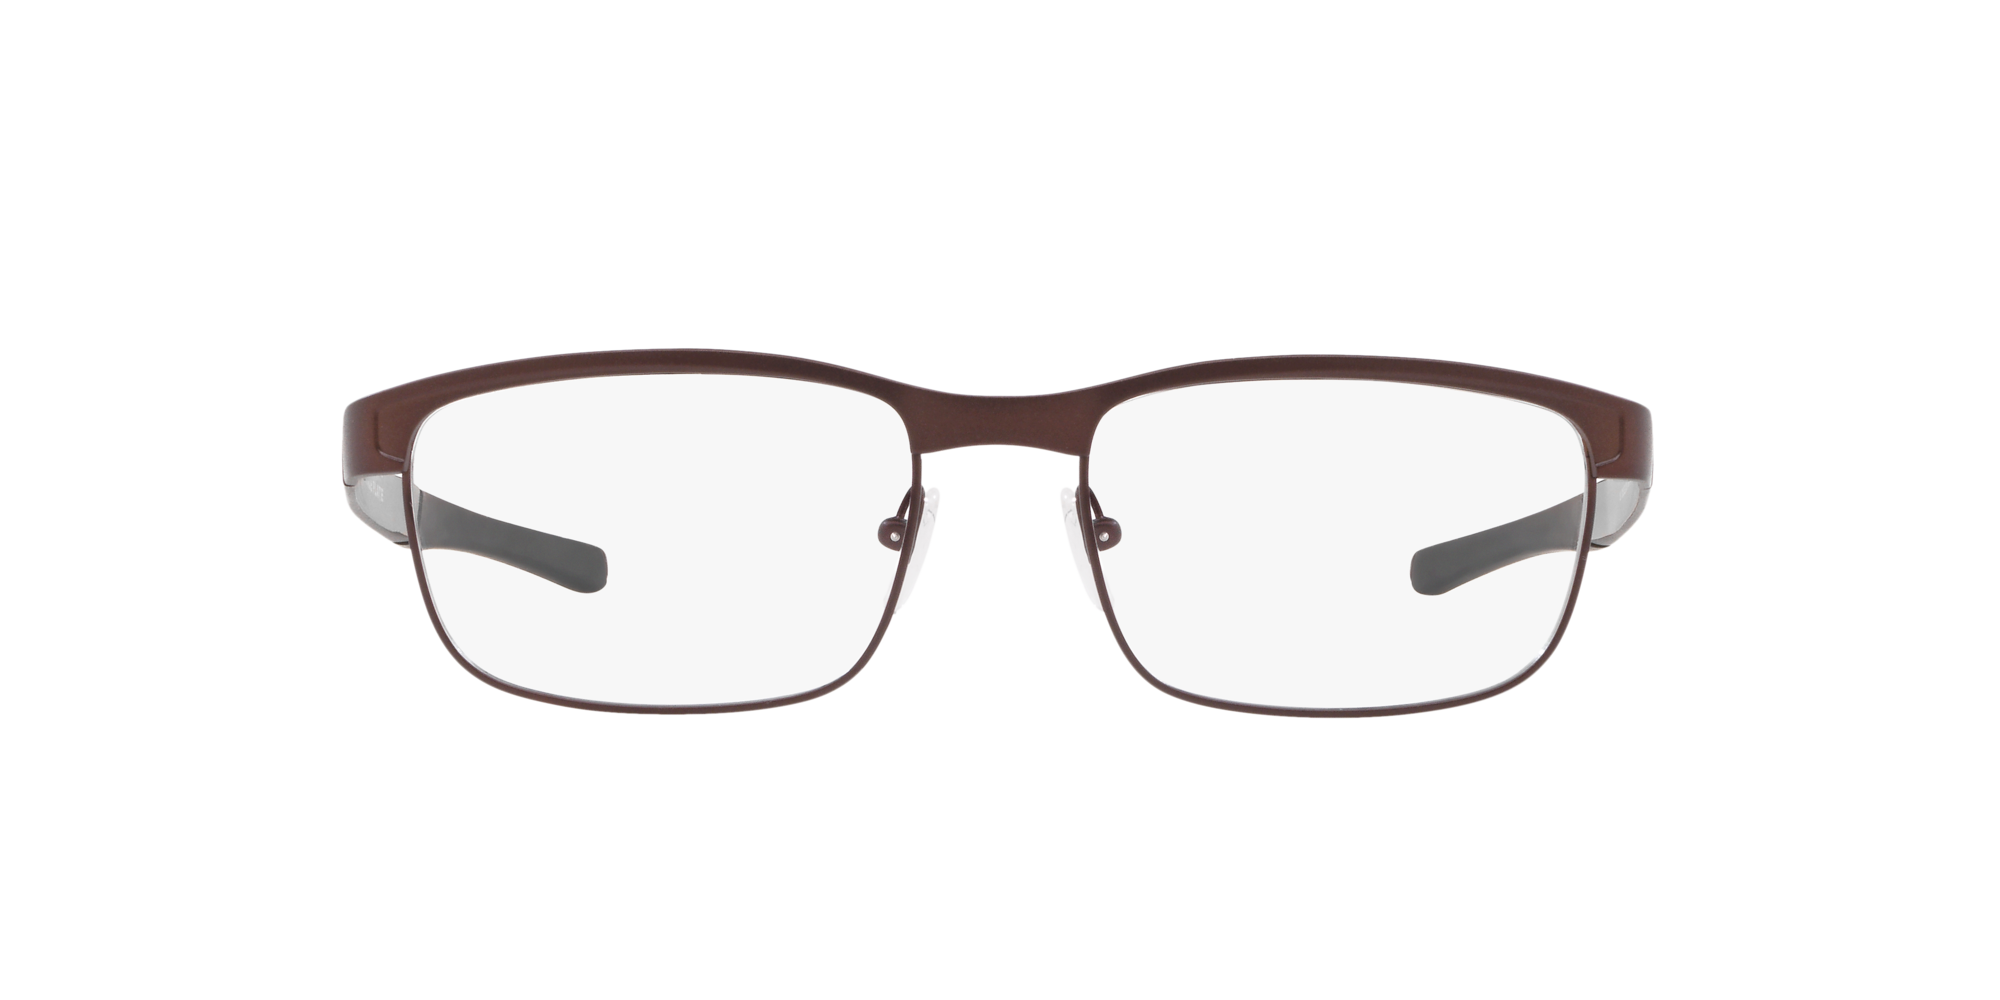 Image for OX5132 SURFACE PLATE from LensCrafters   Glasses, Prescription Glasses Online, Eyewear